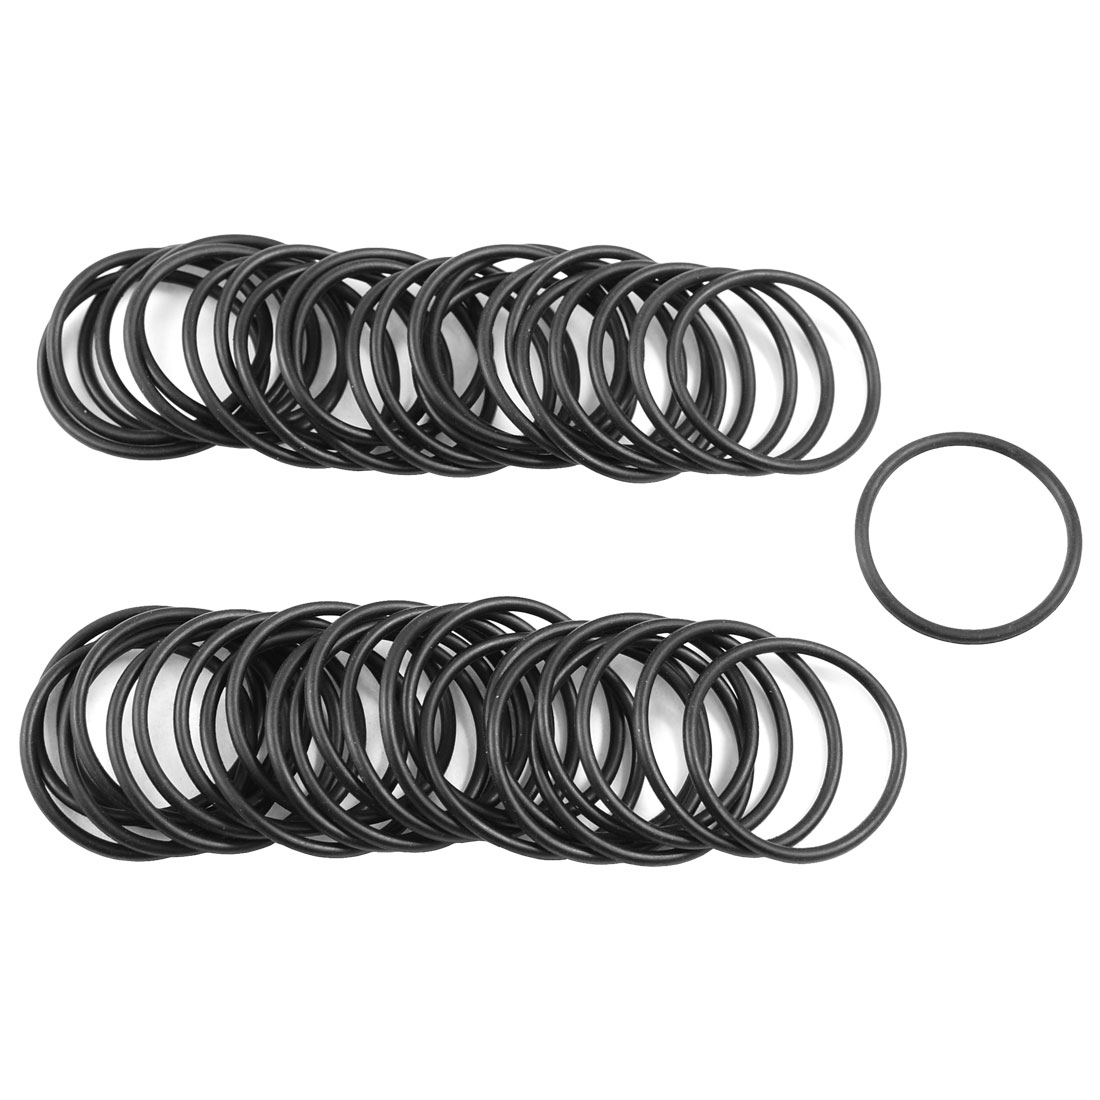 50x NBR 30mm x 2mm Hole Sealing O Rings Gaskets Washers for Automobile